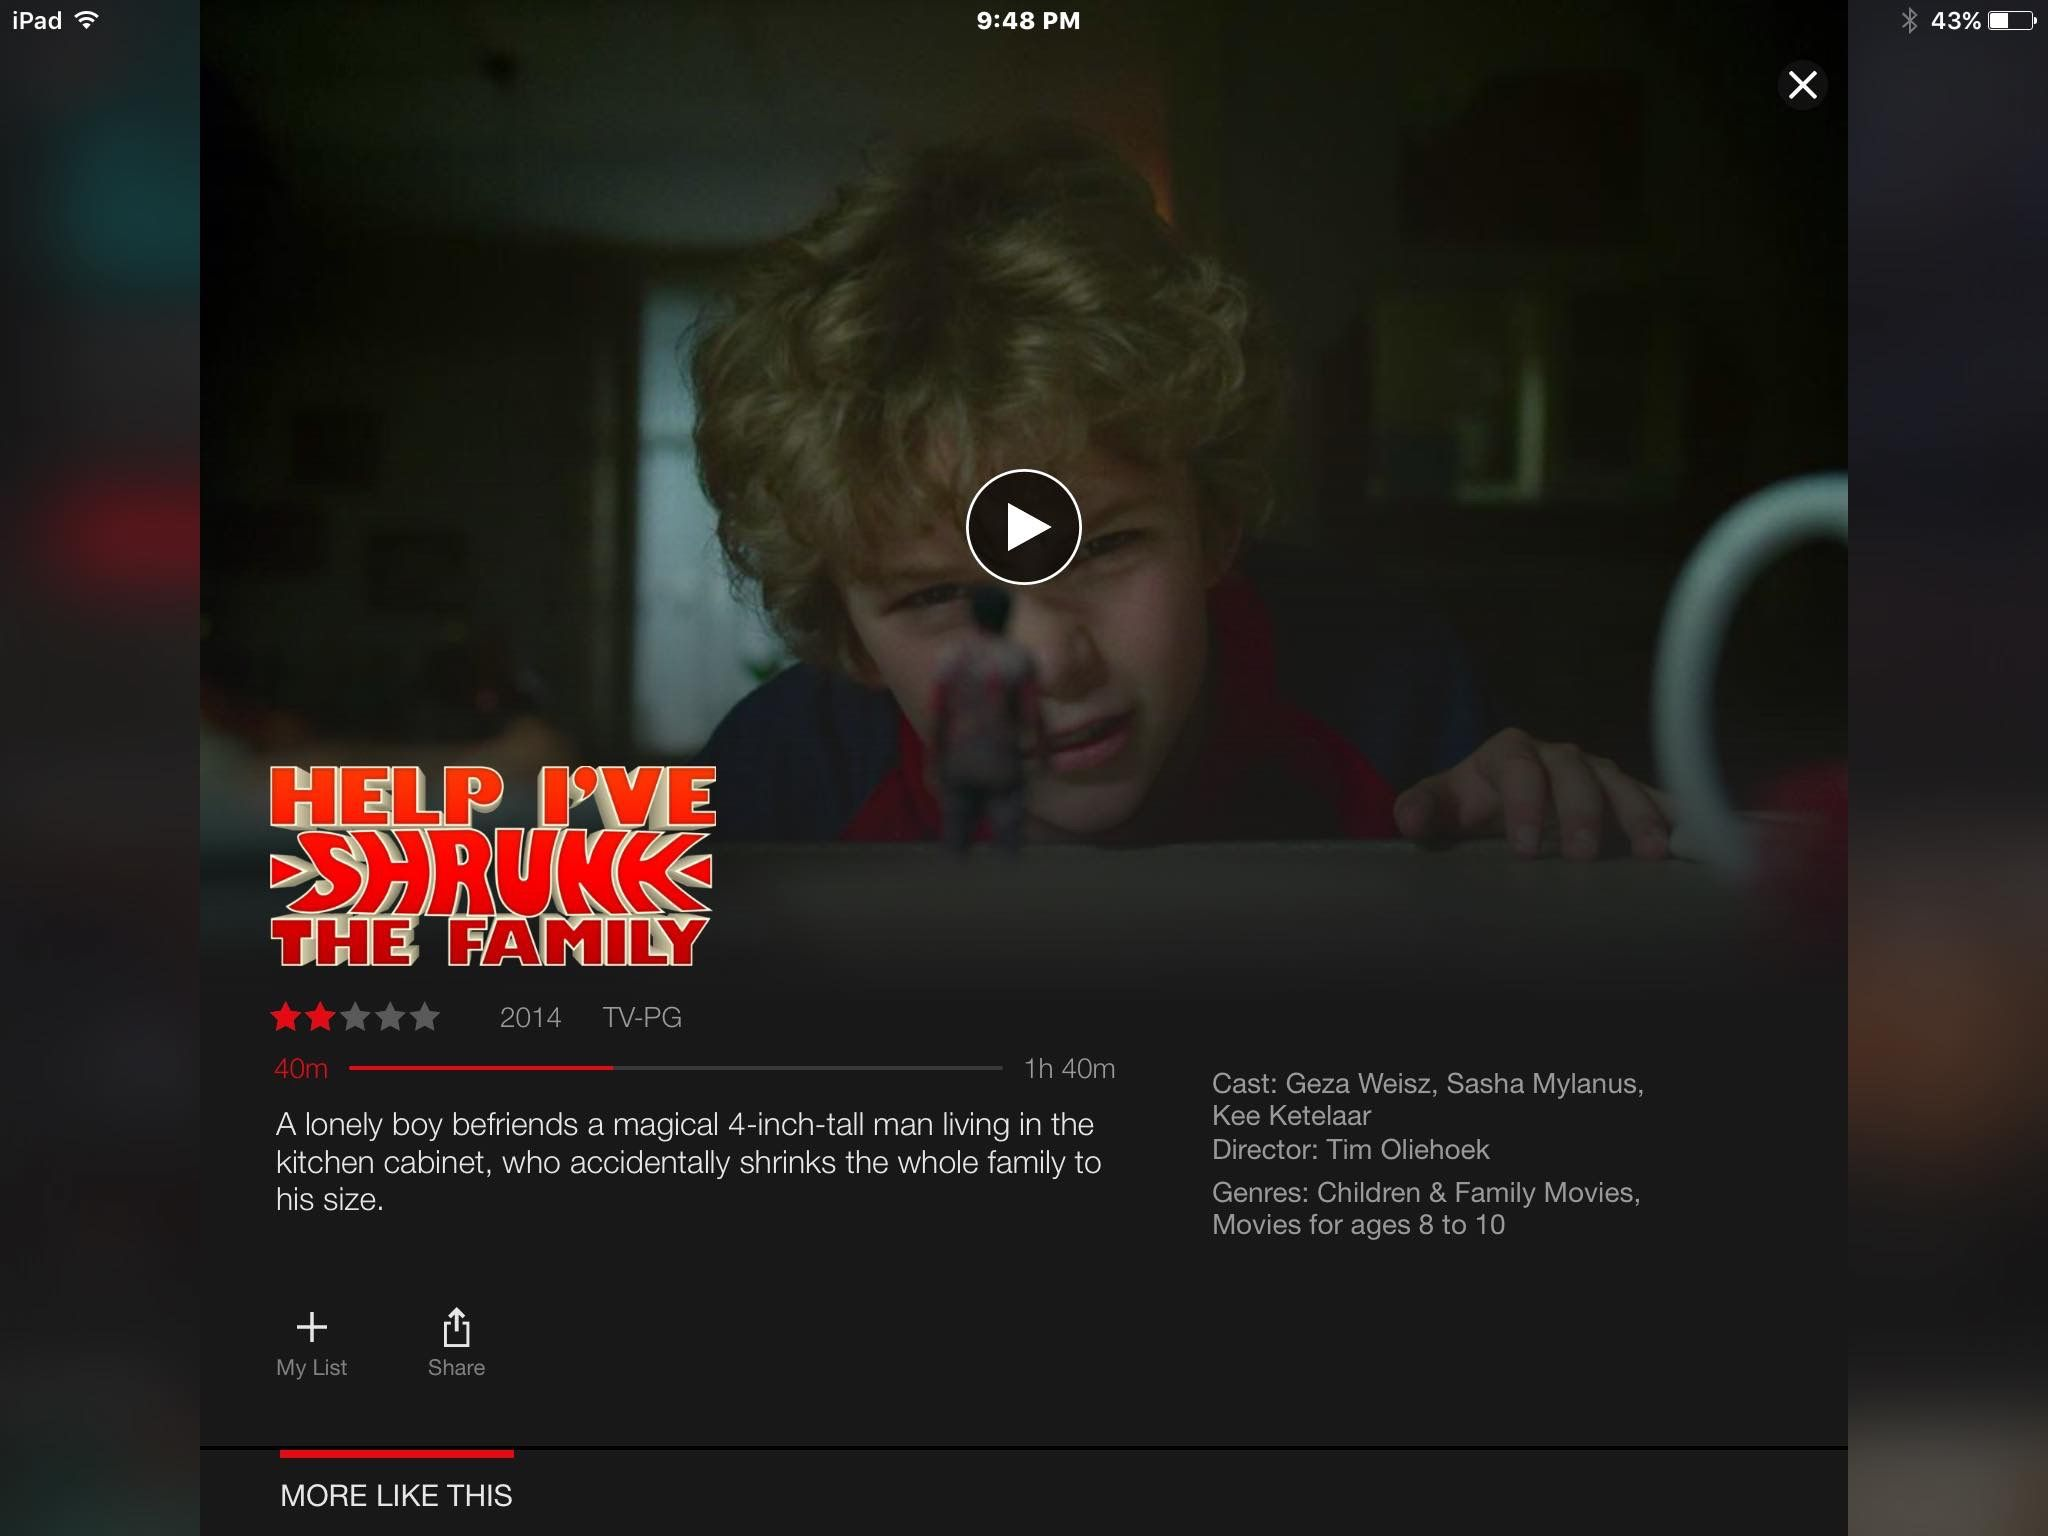 This is a cute movie kid sure would like it but crazy old people like me LOL